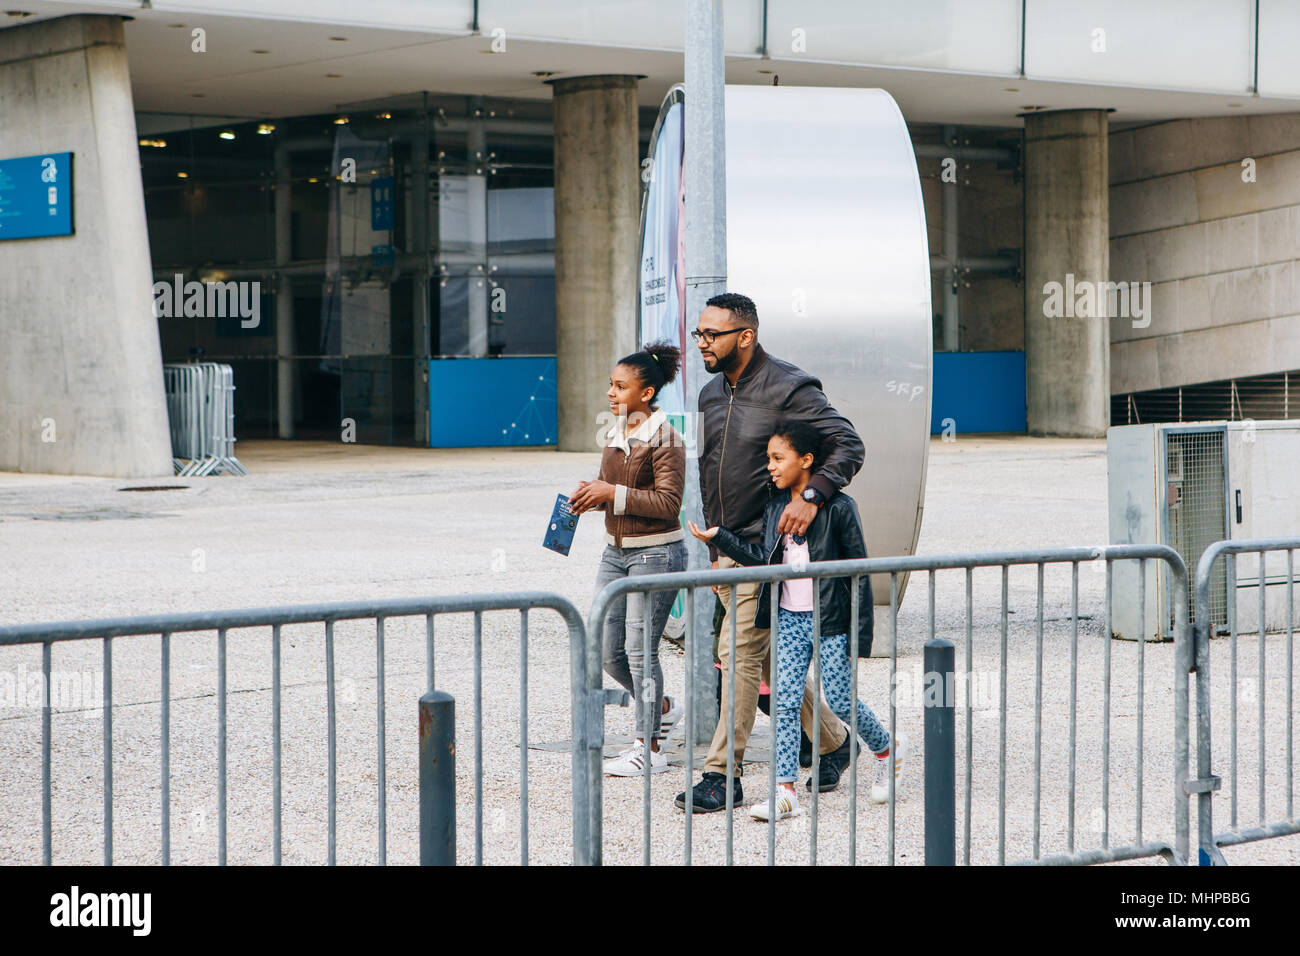 Portugal, Lisbon 29 april 2018: family or tourists or group of people walk down by street Stock Photo